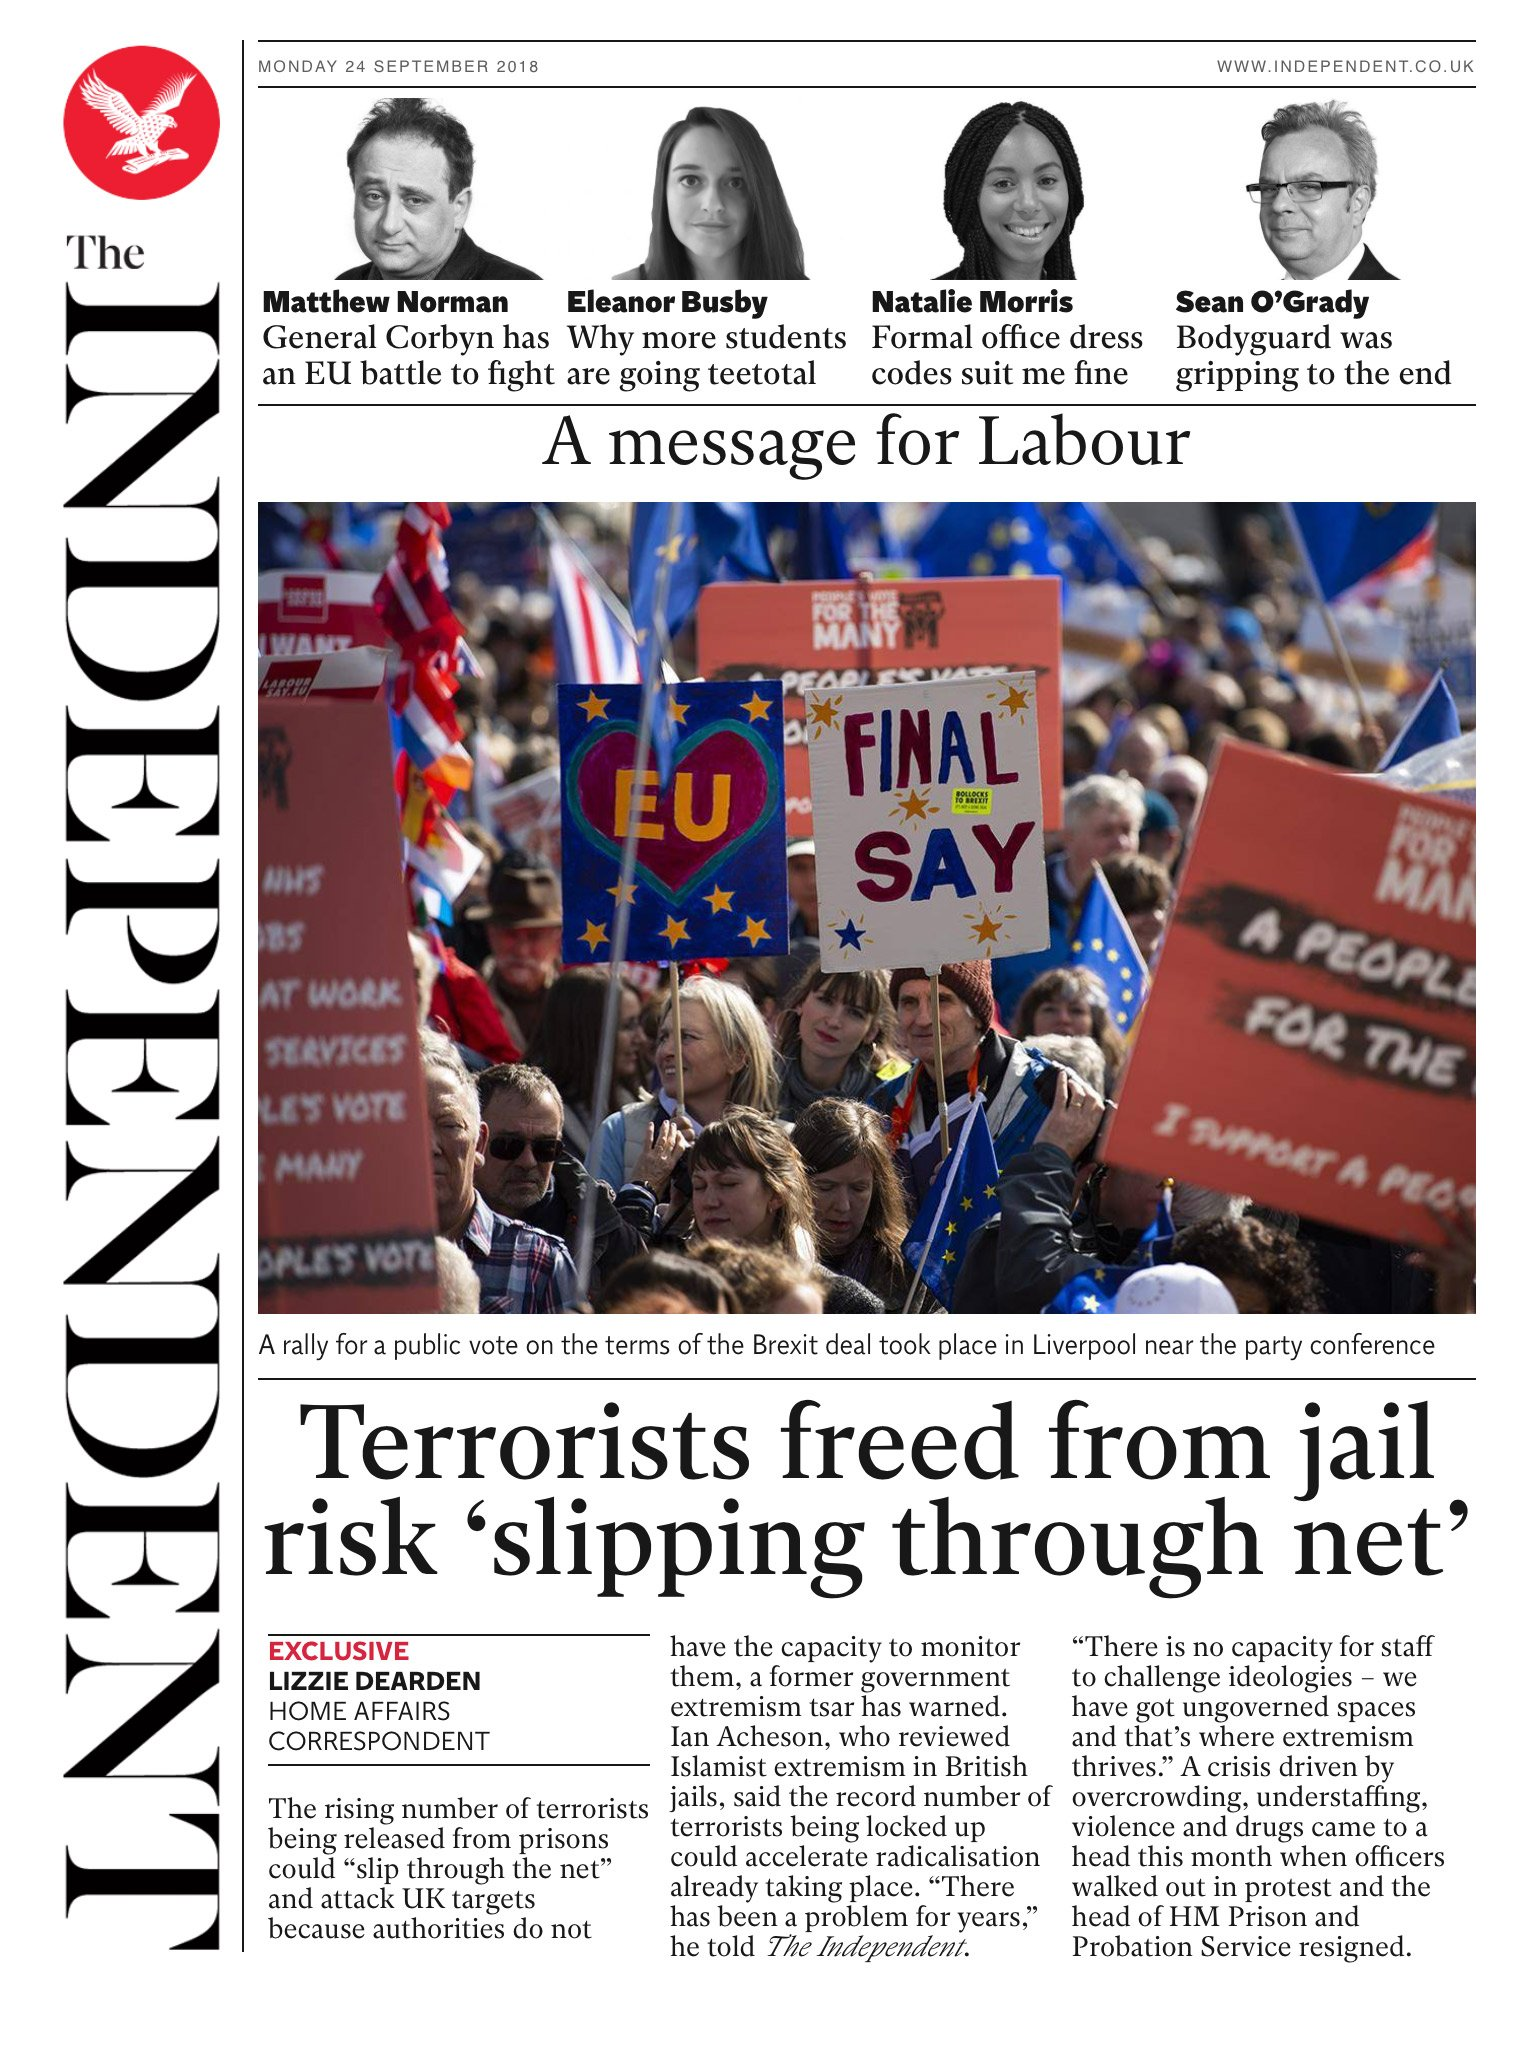 Tomorrow's @Independent front page #tomorrowspaperstoday To subscribe to the daily edition: https://t.co/ozdV9Zd9Si https://t.co/6TPJvx0Jaw